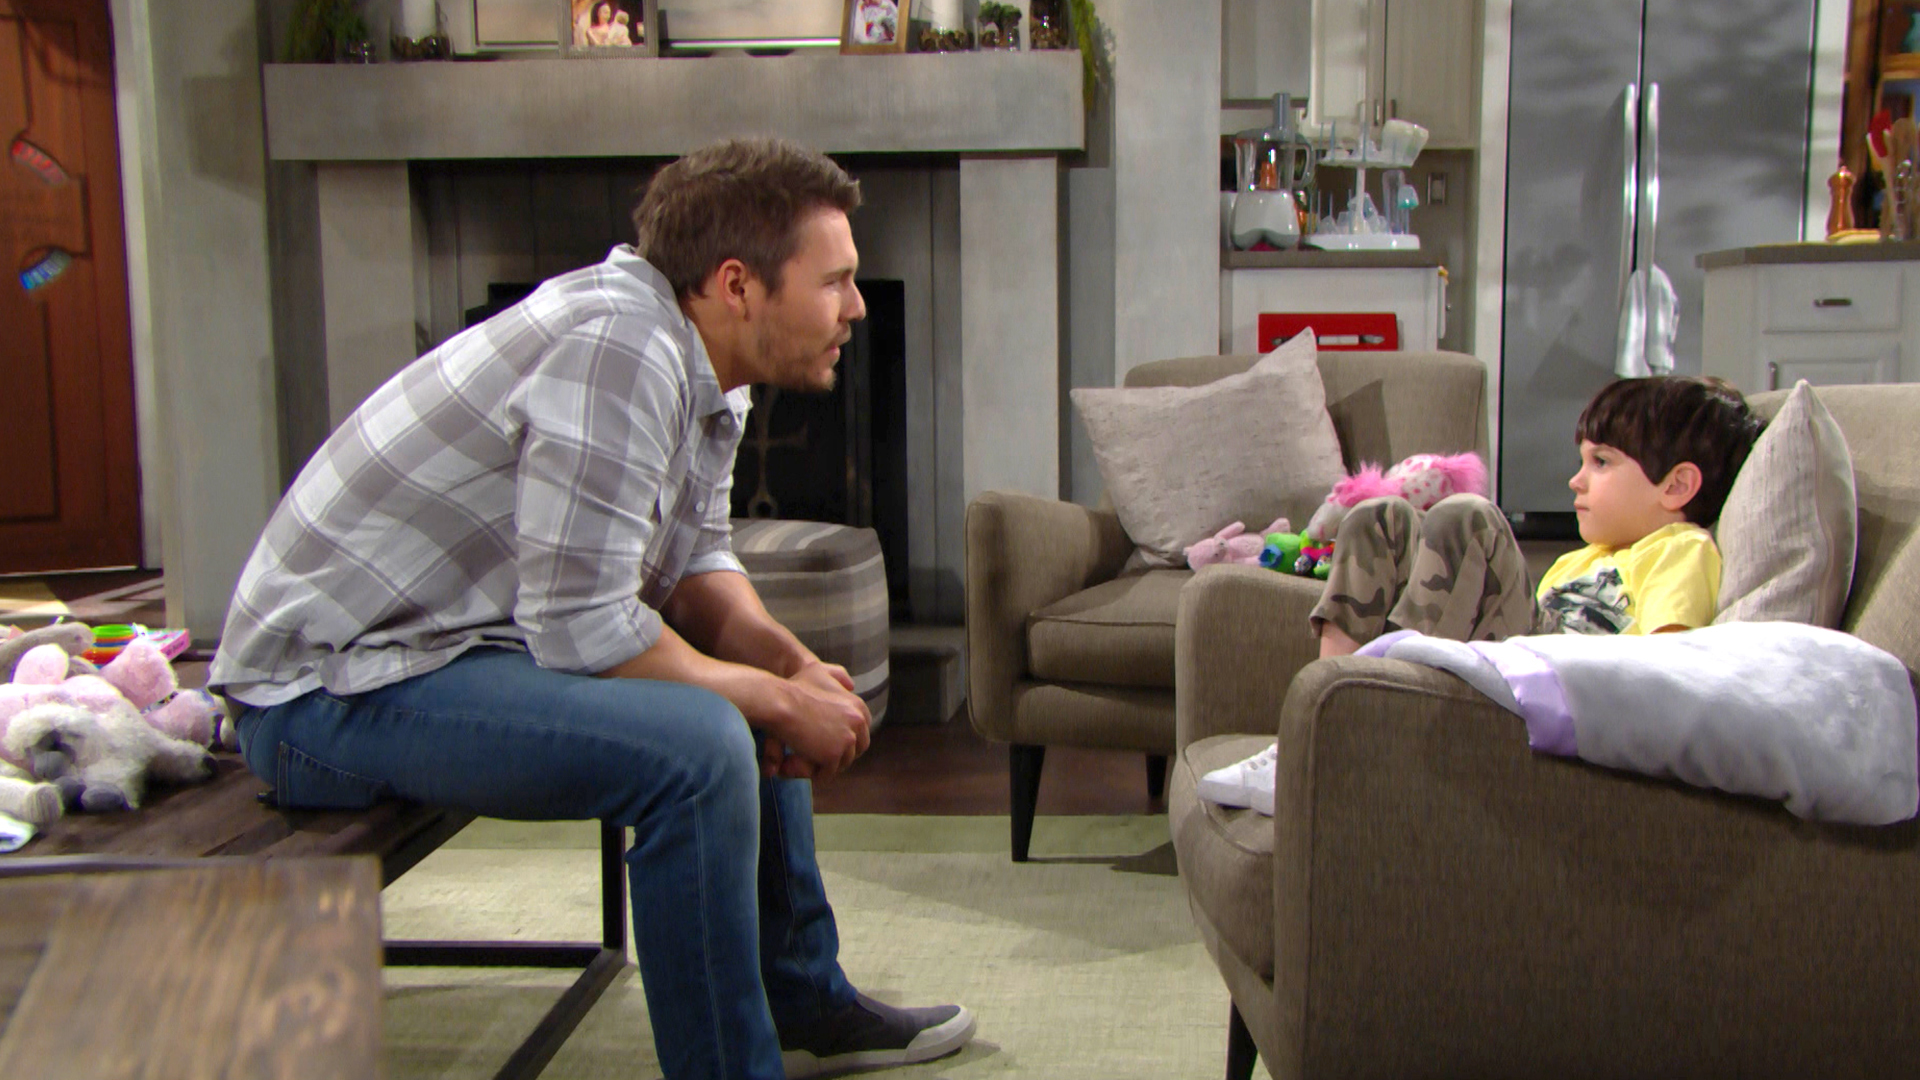 Watch The Bold and the Beautiful Season 32 Episode 217: 7/29/2019 - Full  show on CBS All Access